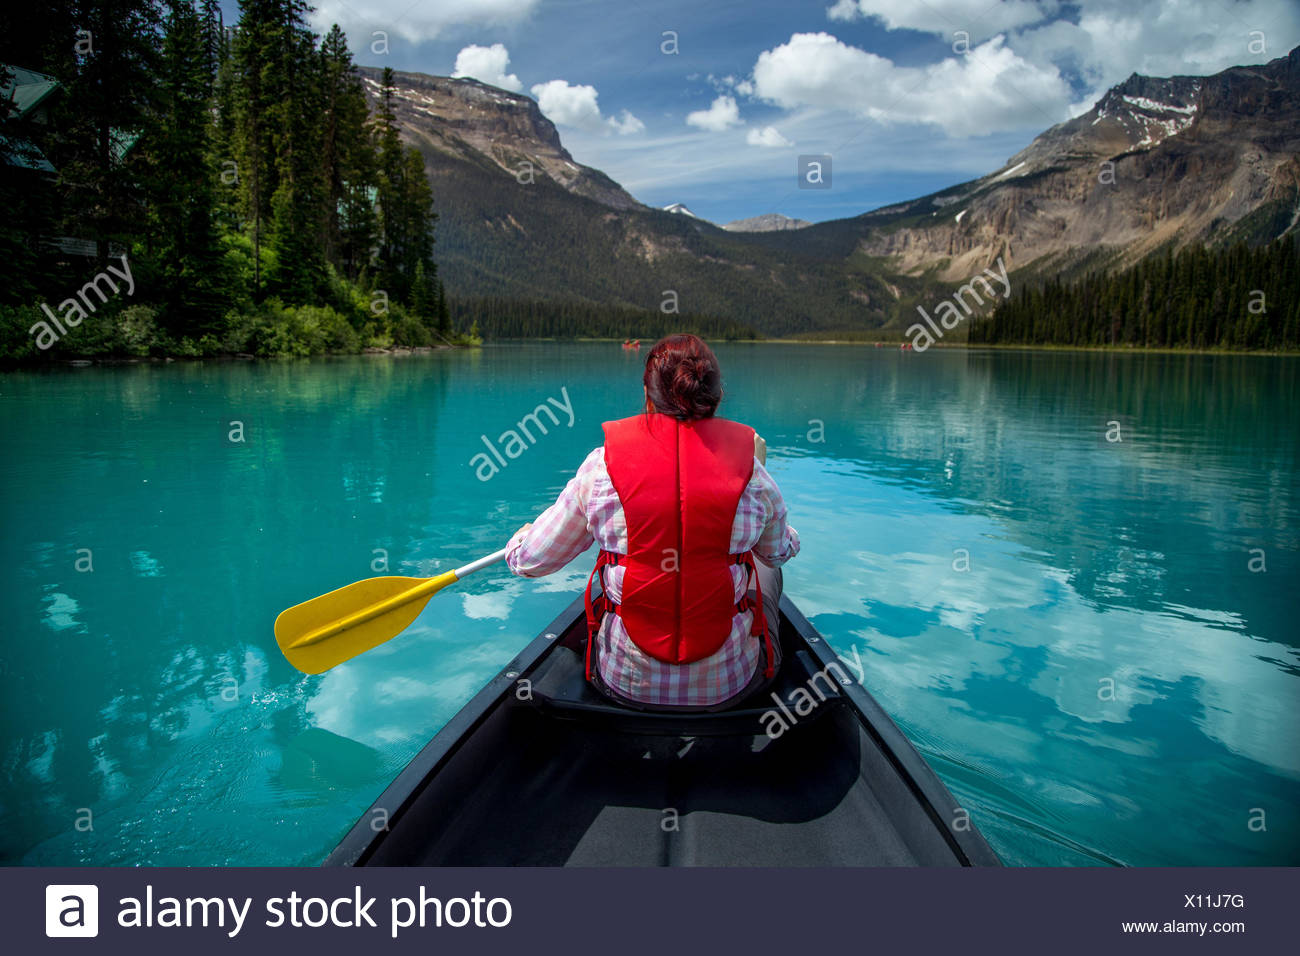 Femme canoë à Emerald Lake, le parc national Yoho, Colombie-Britannique Canada Photo Stock